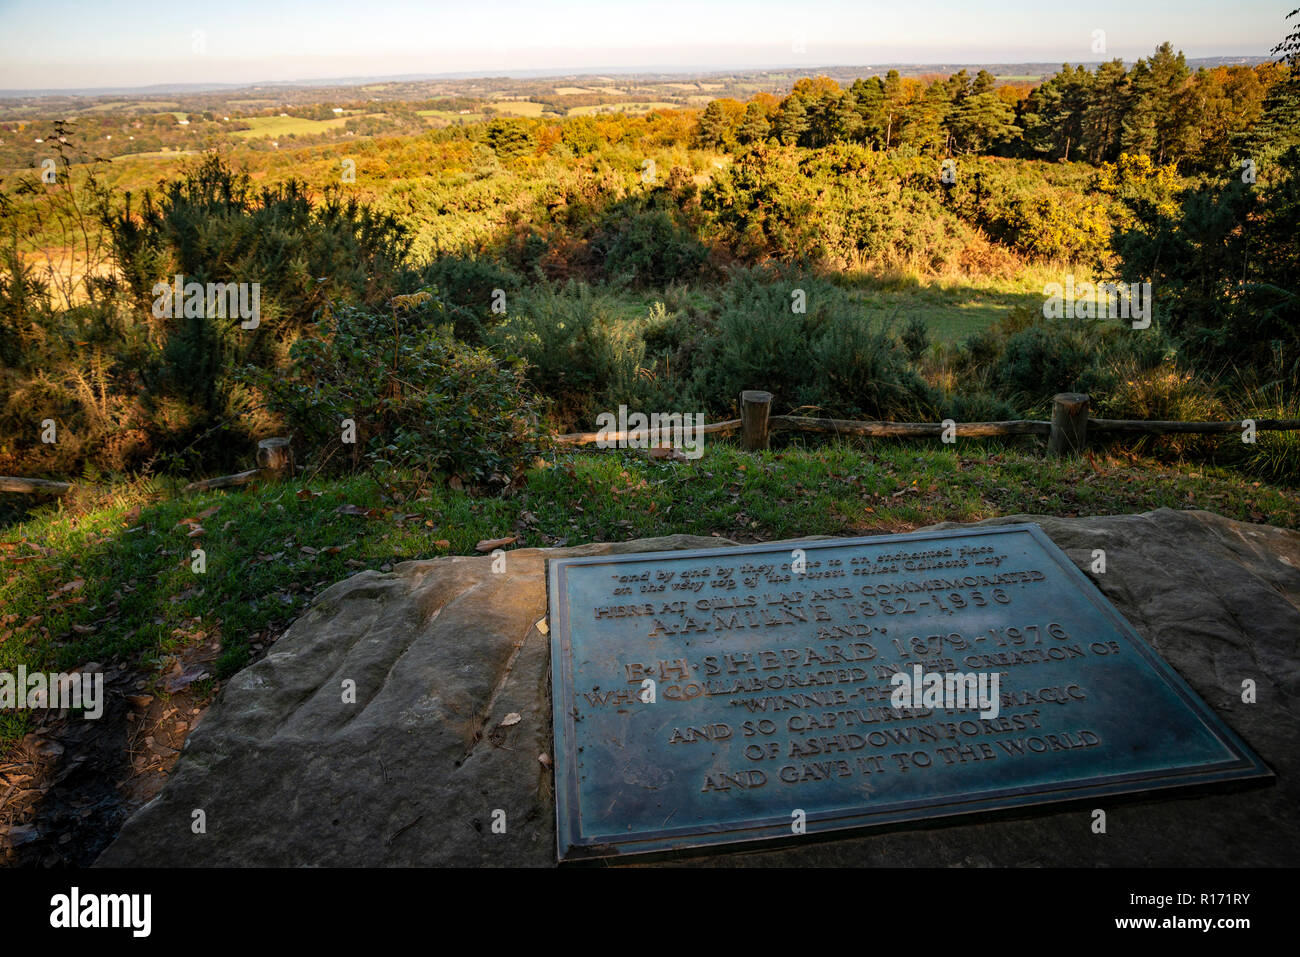 The memorial to AA Milne and EH Shepard at Gills Lap in Ashdown Forest, East Sussex, UK - Stock Image